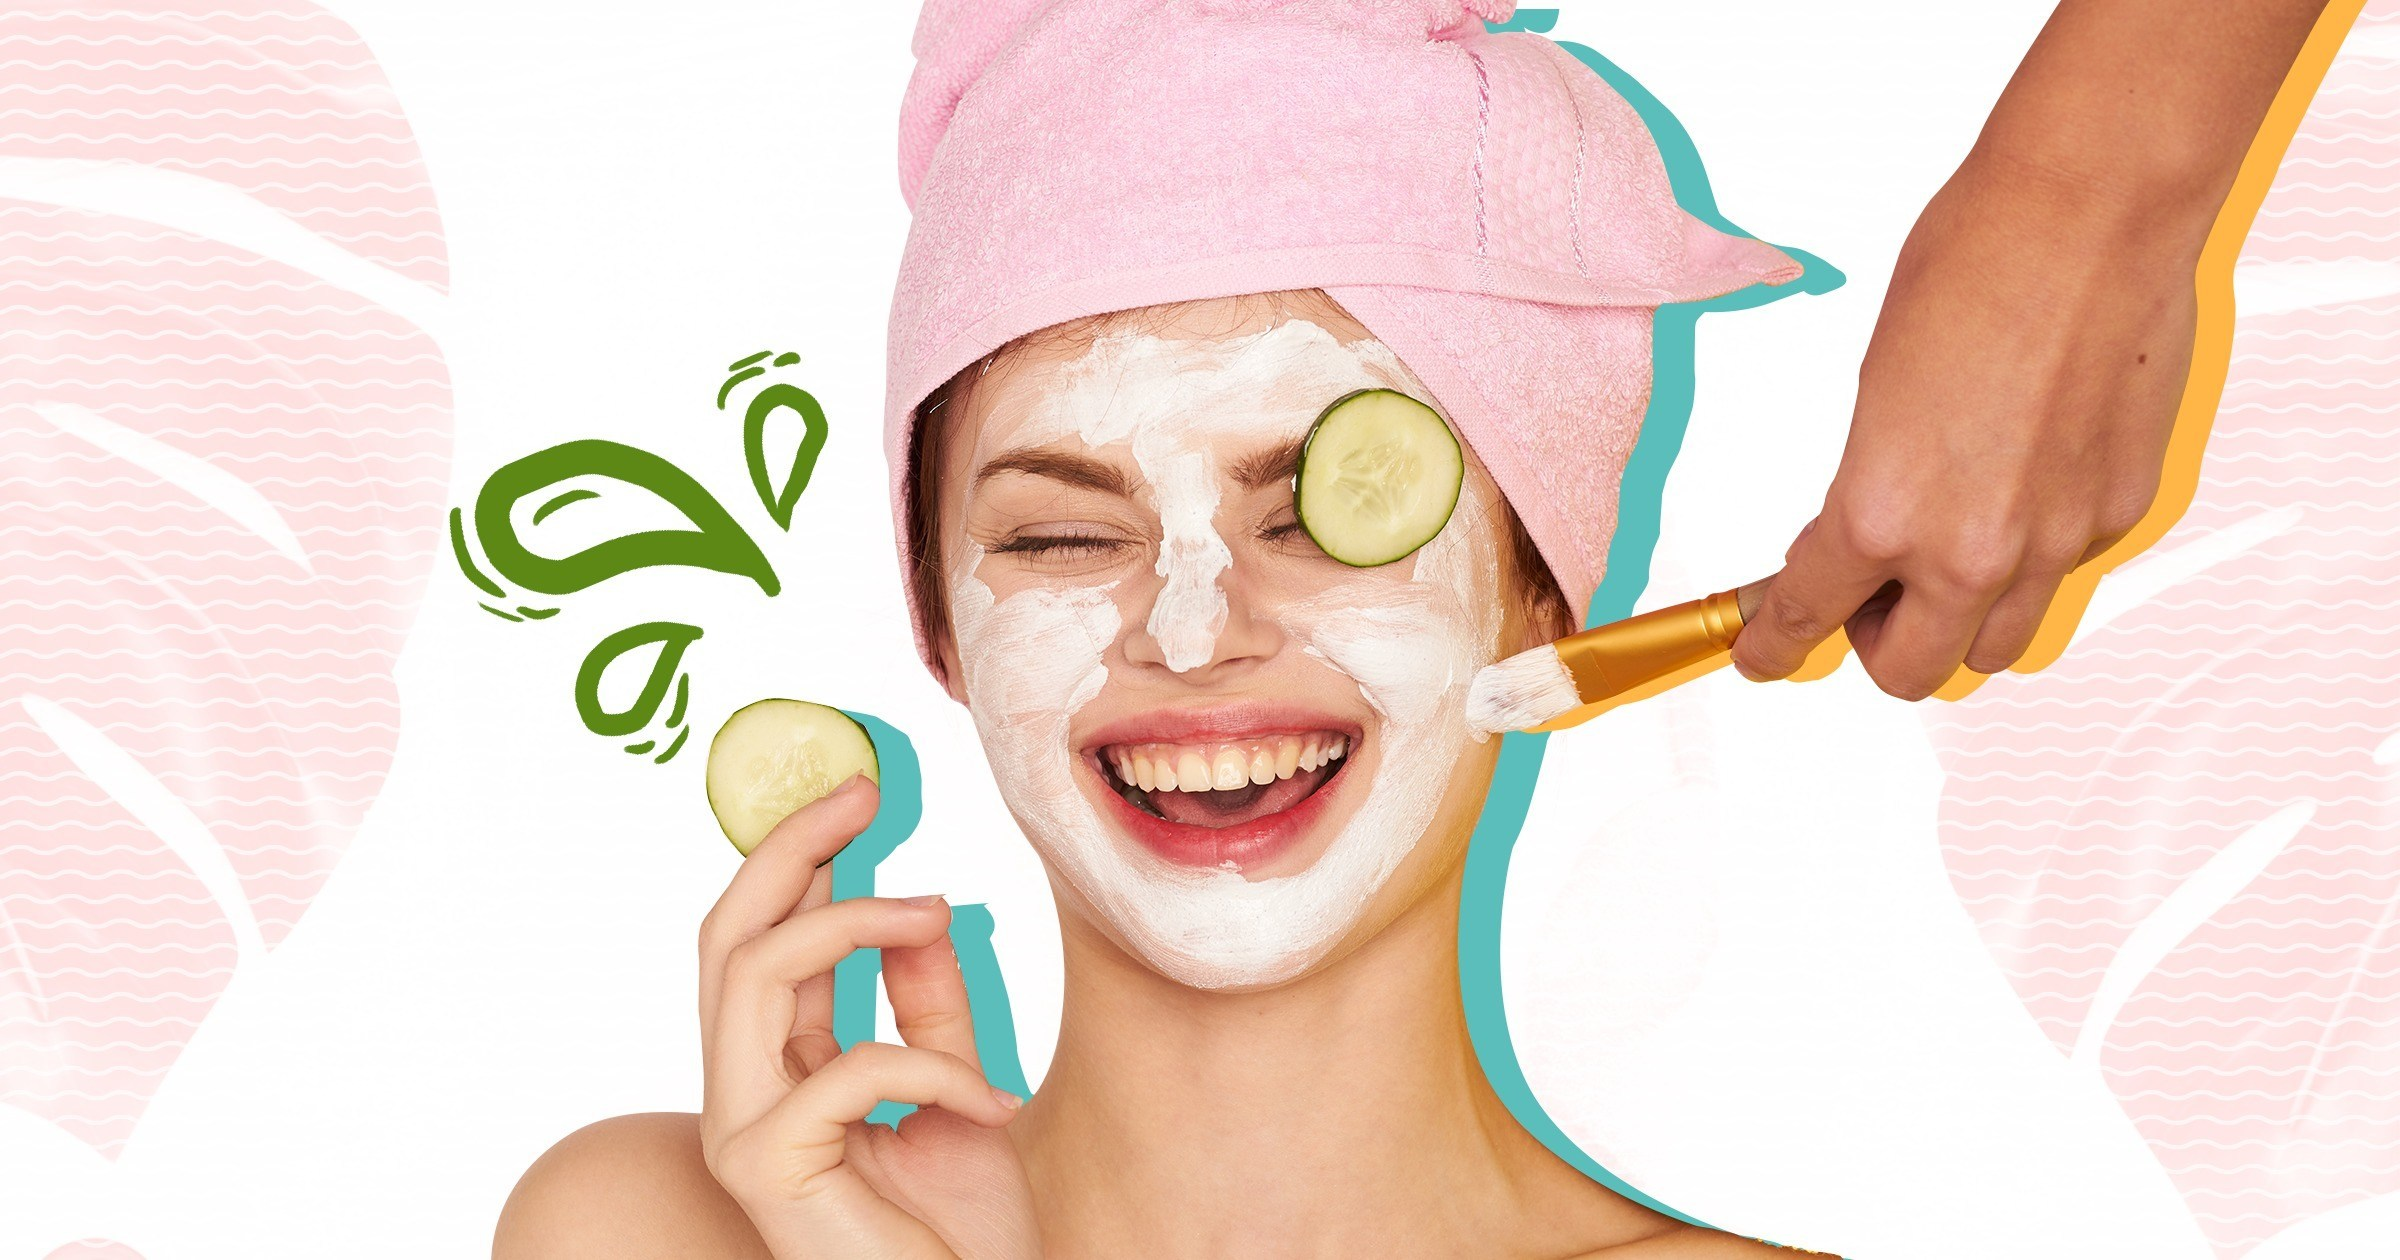 How to take proper care of your face? Face care tips